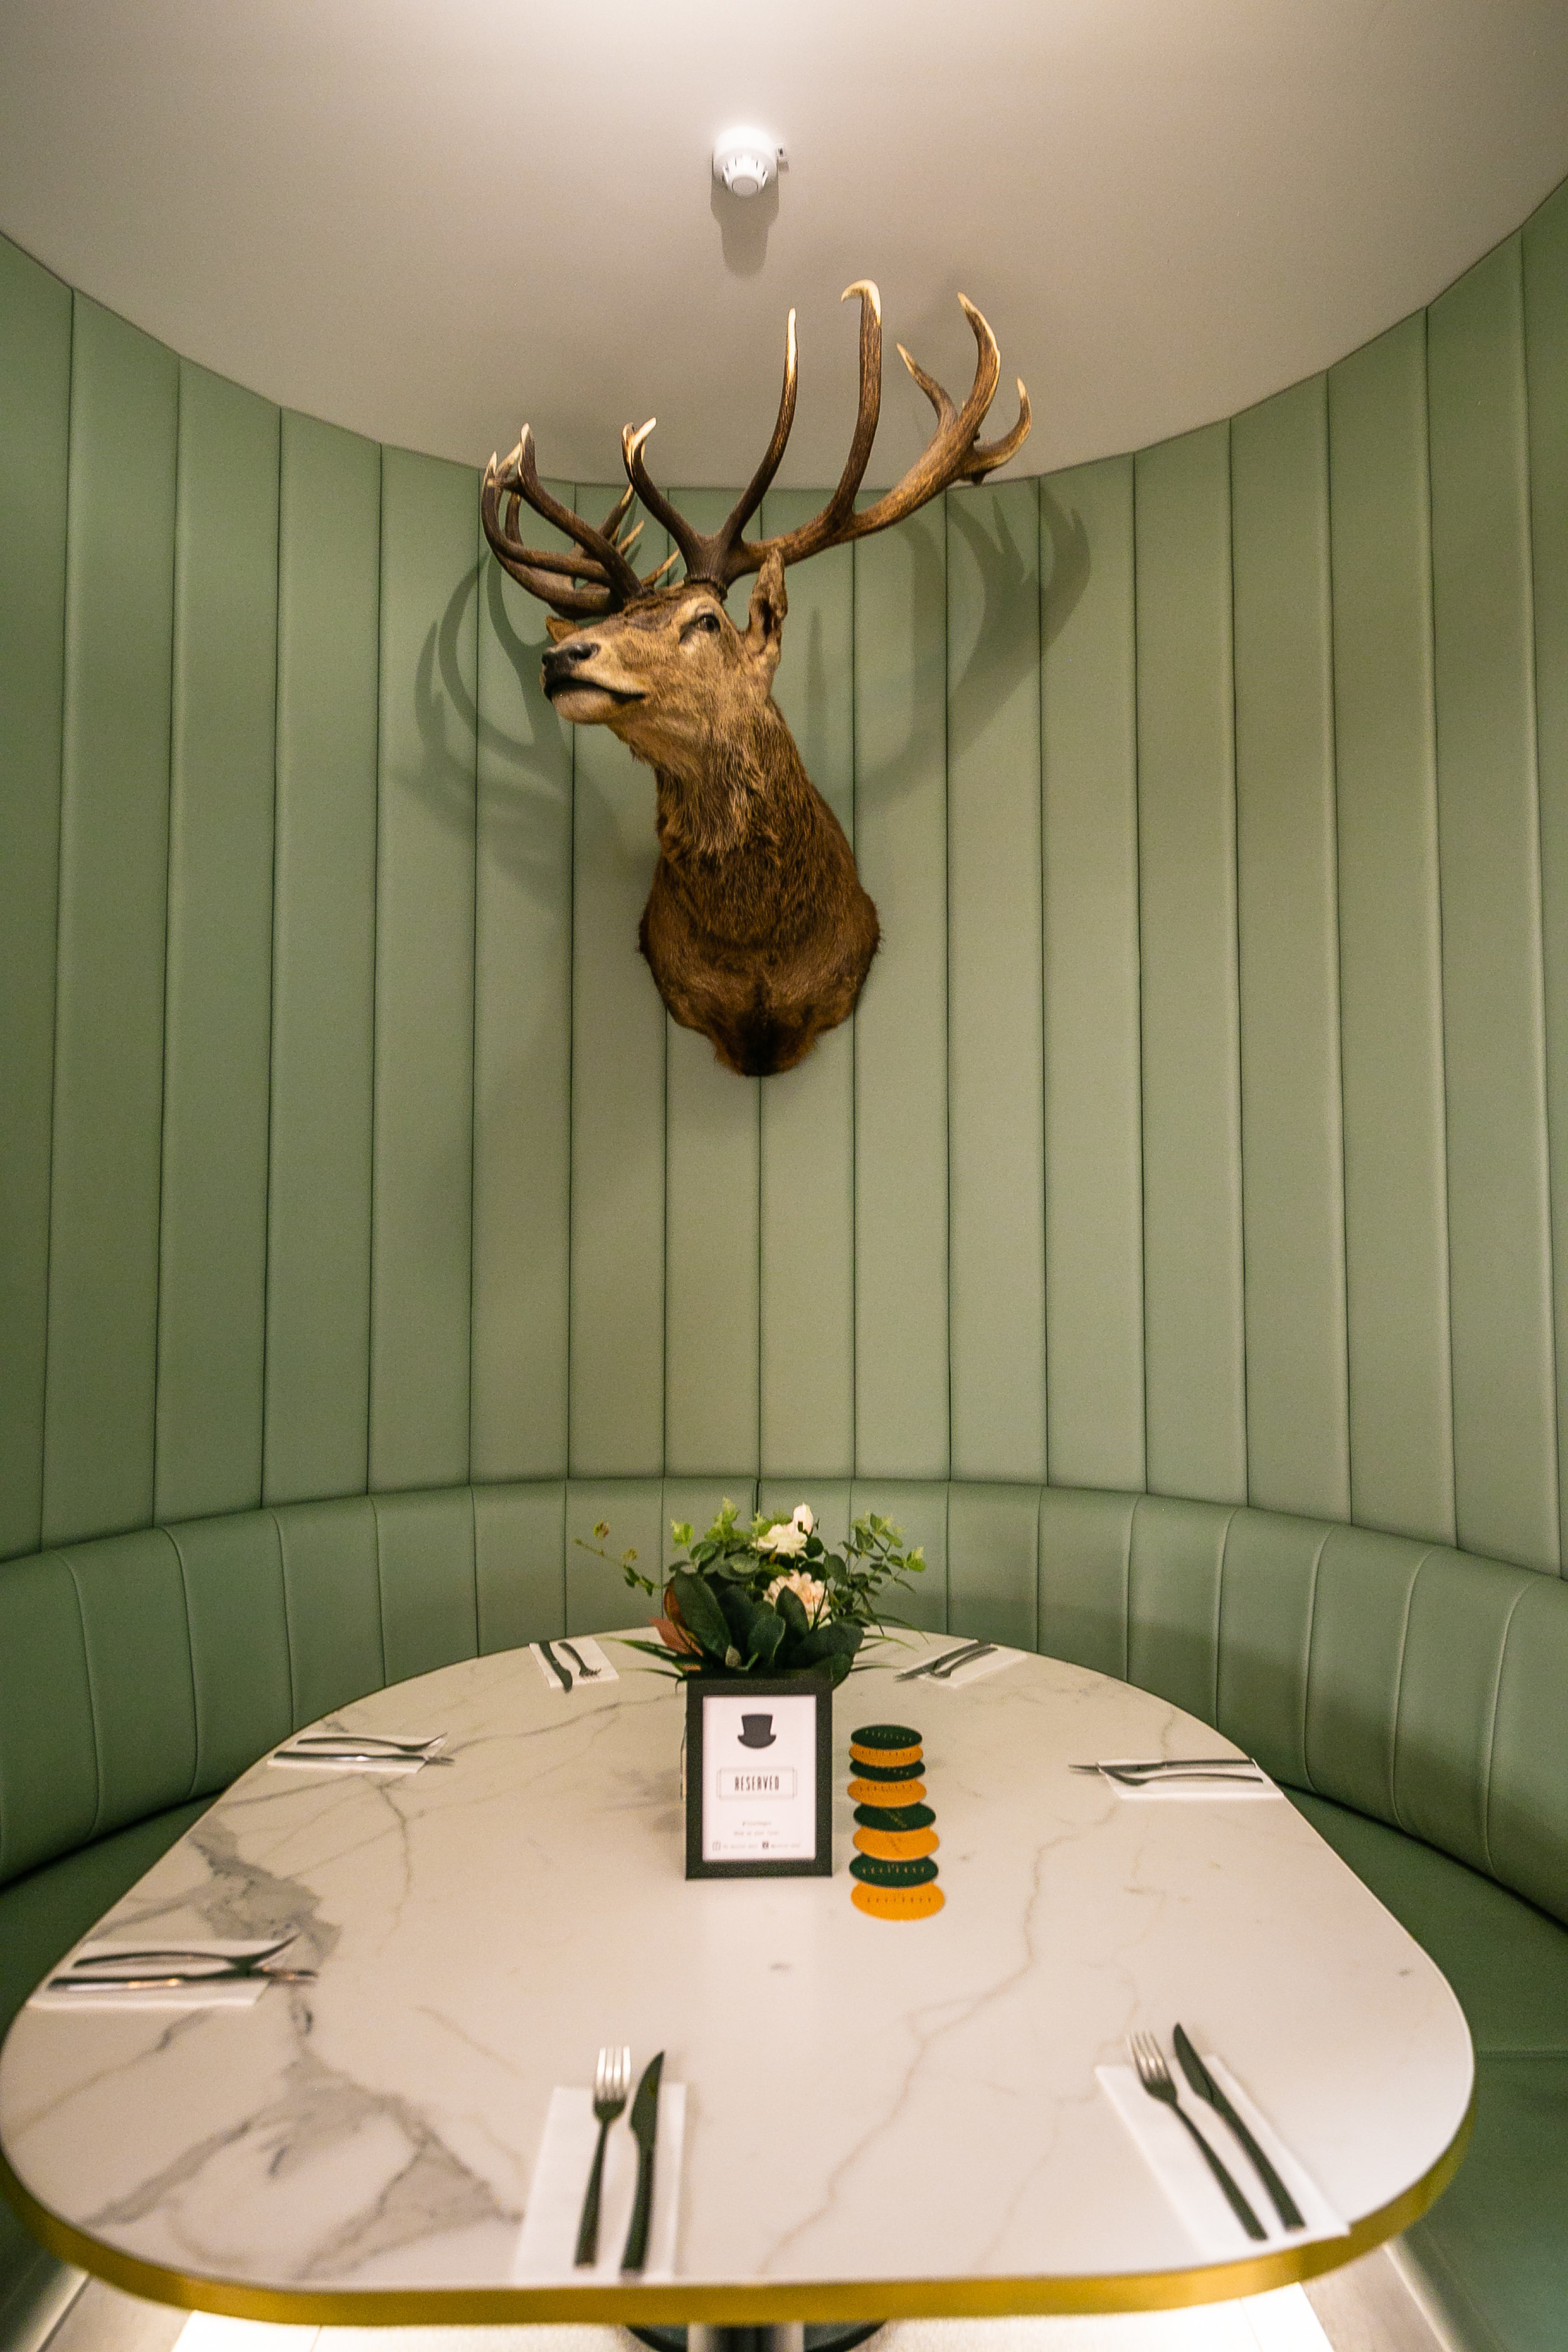 Loved these funky private booths with wildlife